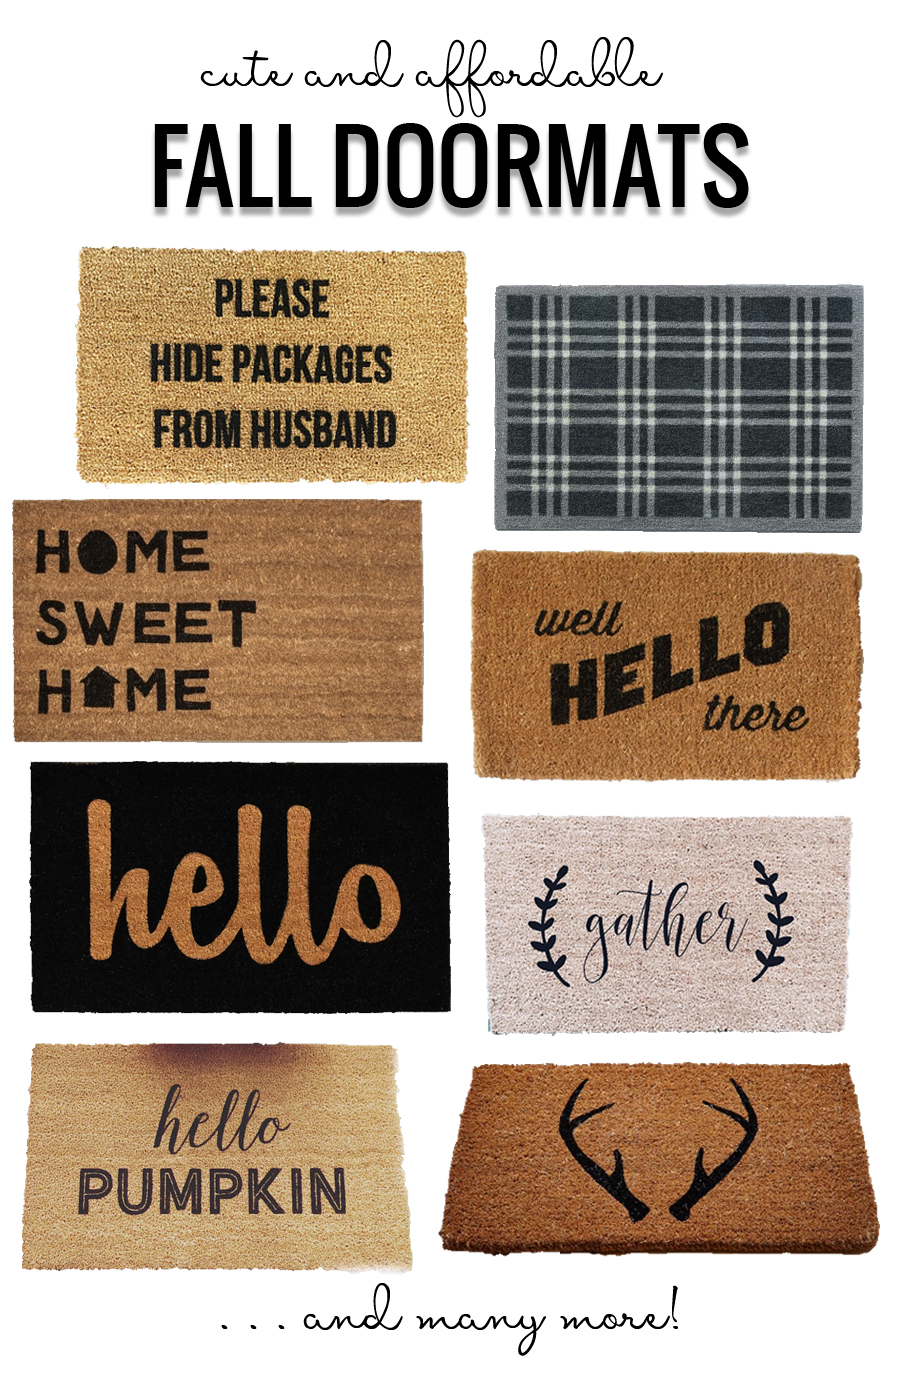 Cute And Affordable Fall Doormats Options featured on Remodelaholic.com